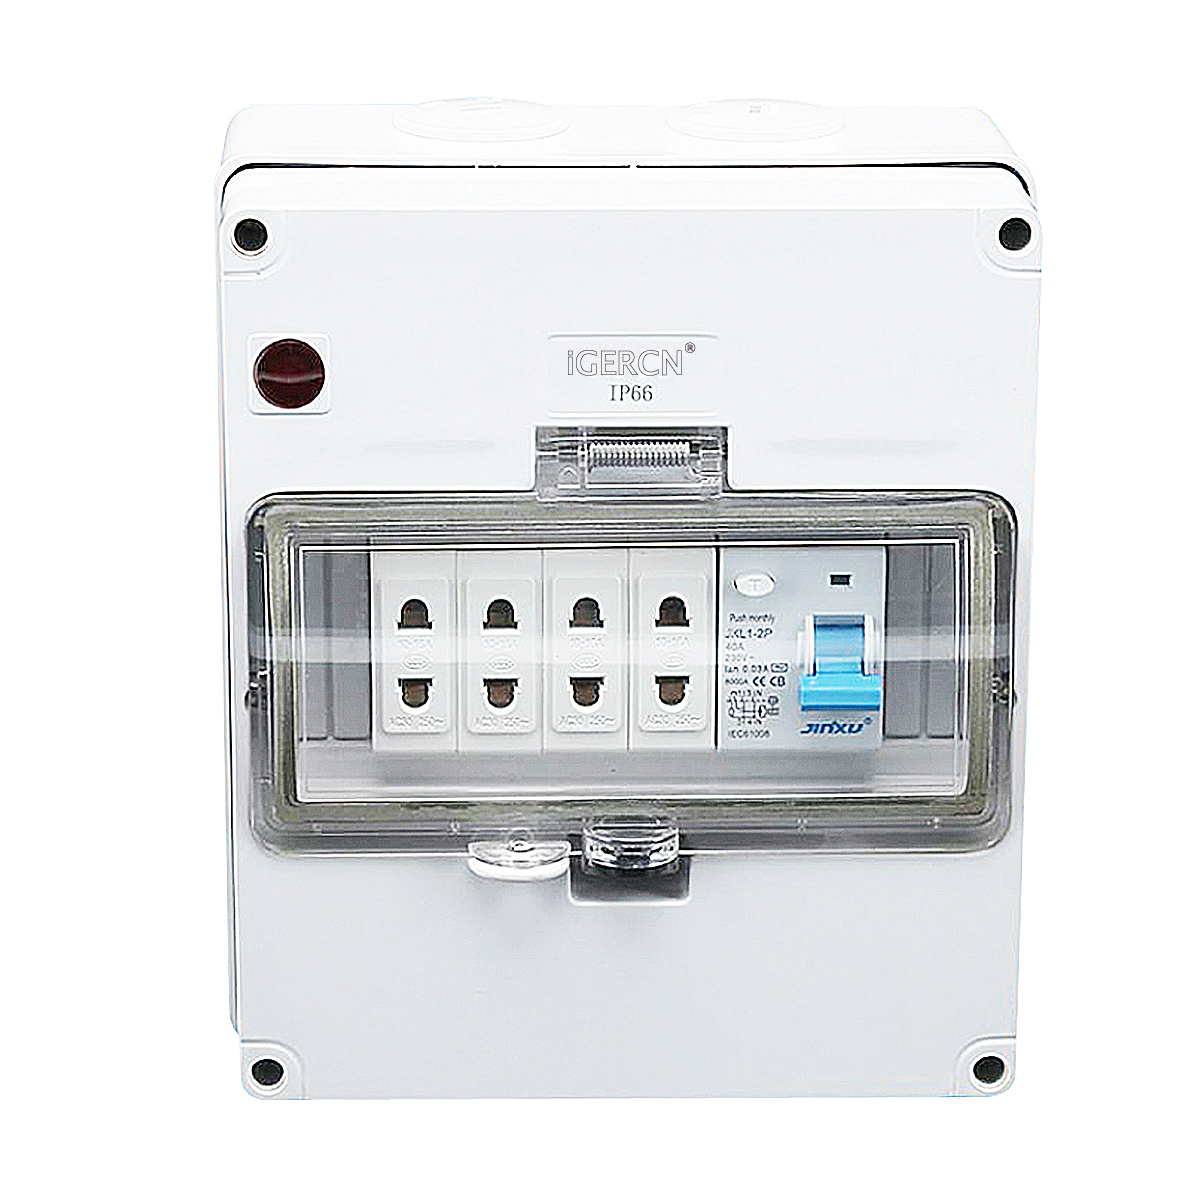 IGLCB8N-1G4TW(1Gang Switch 4Gang Socket 10A-250V~)